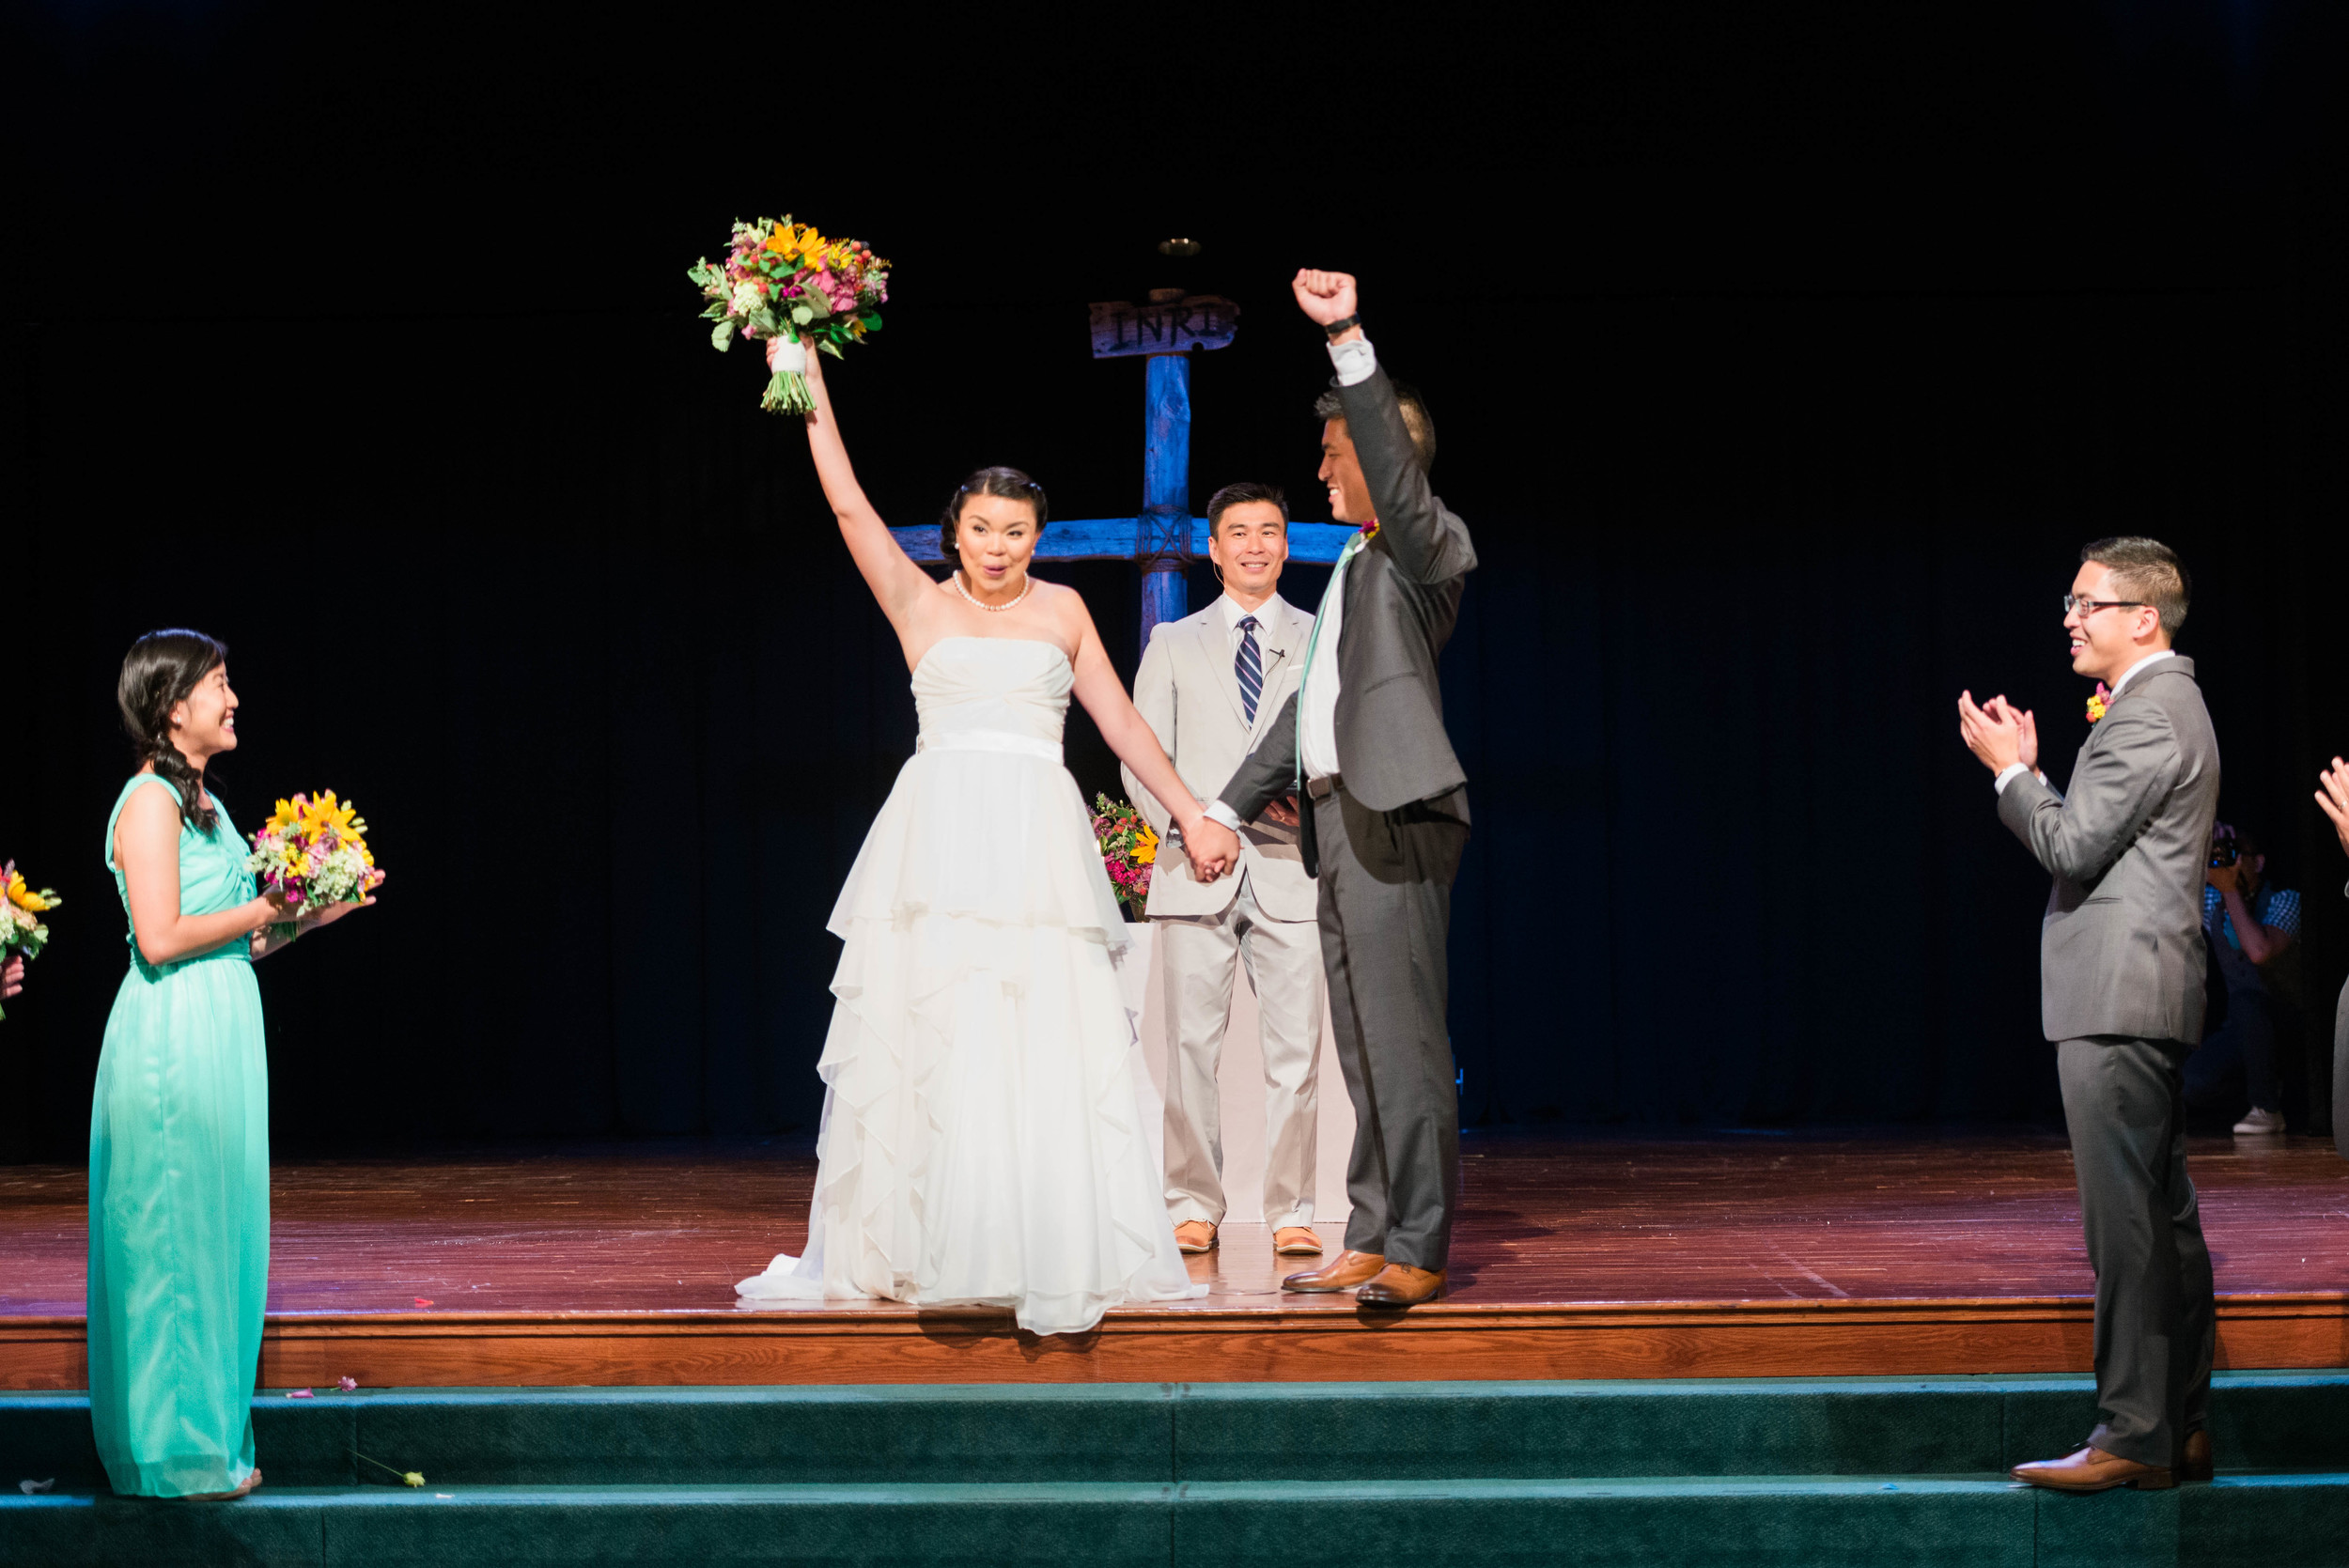 WEDDINGEvangelineDennis-438.jpg